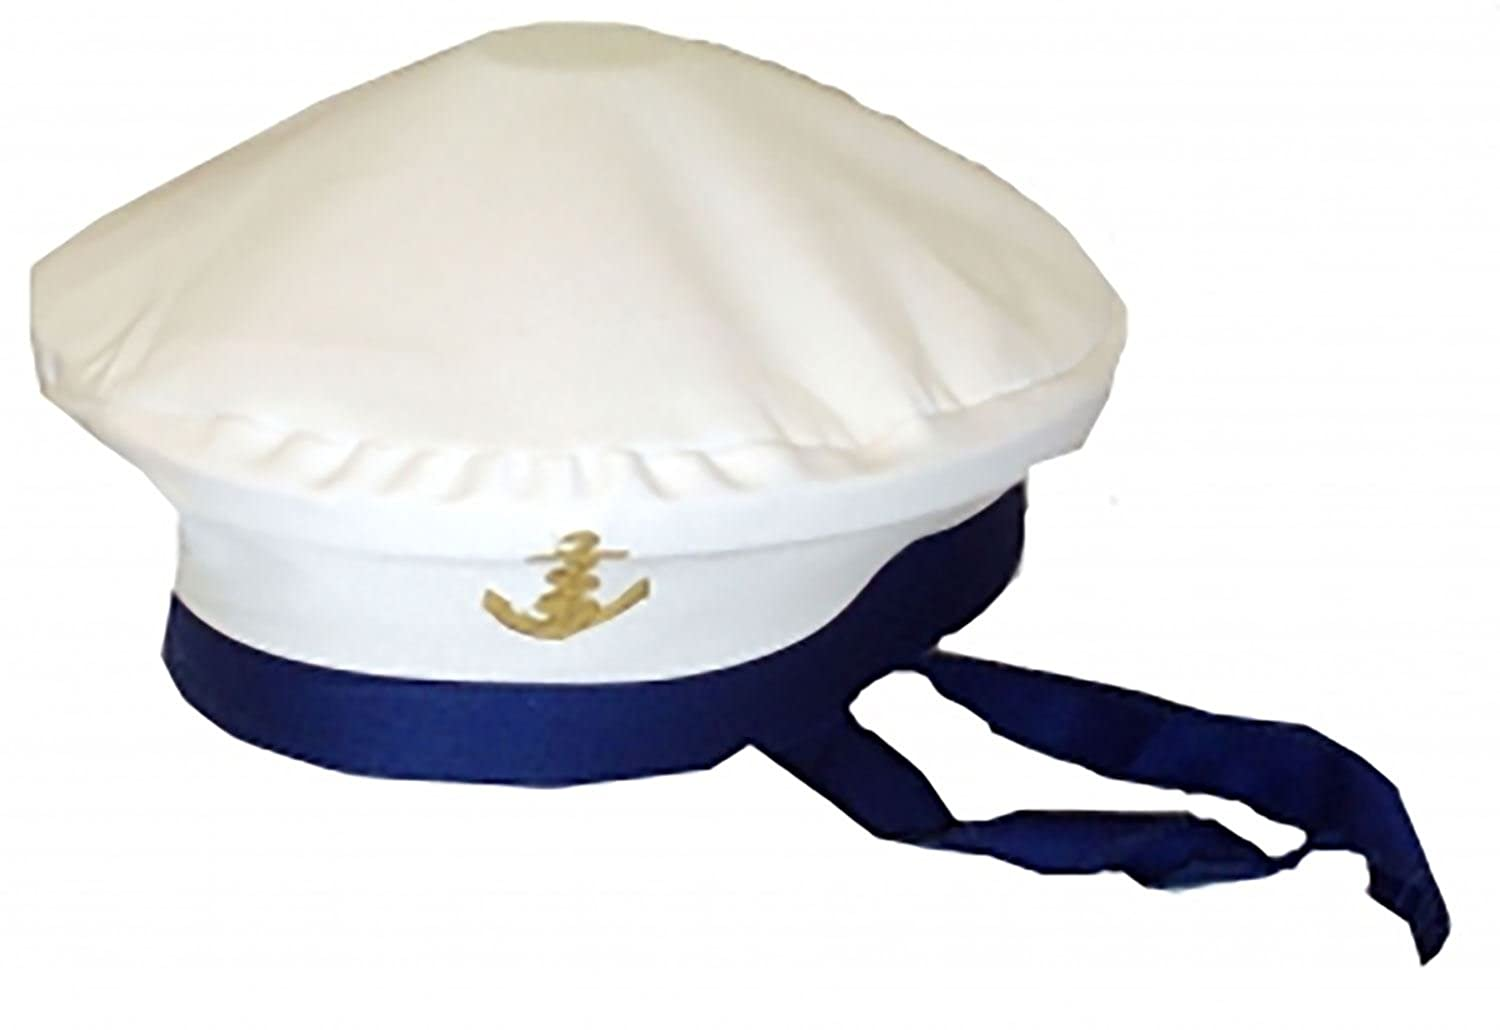 Da Uomo Navy Capitano Marinaio Cappello da donna Marine Force Costume Festa Accessorio Cappello